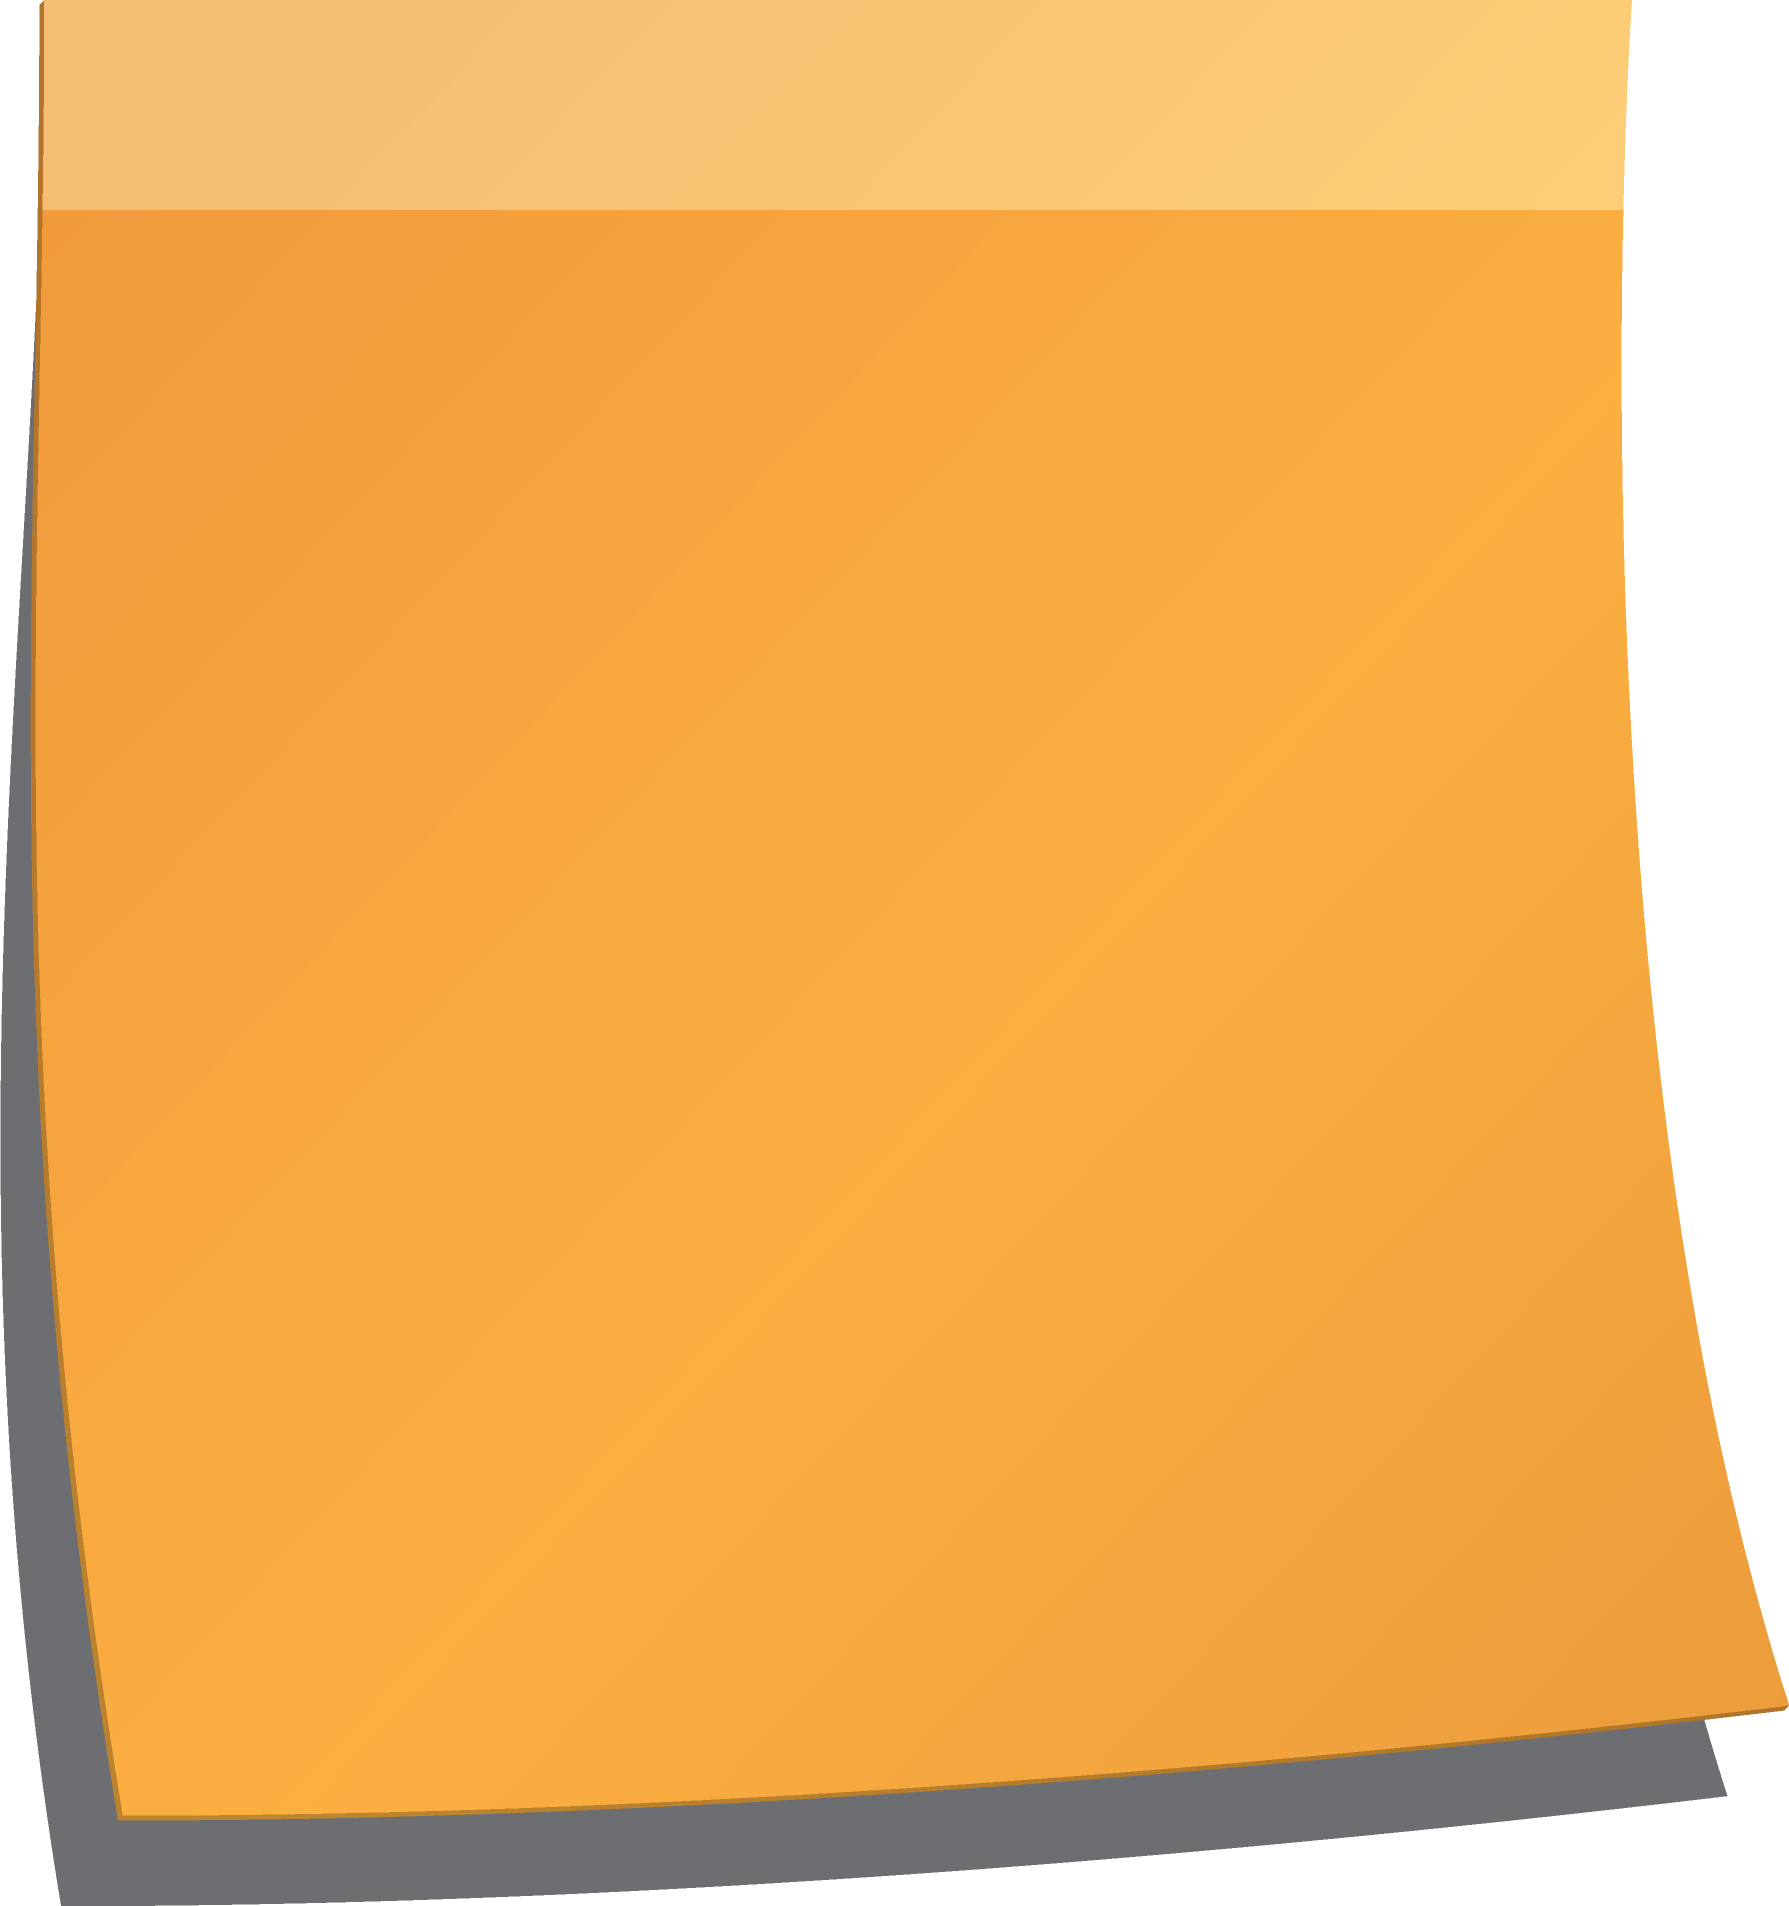 Transparent Cute Sticky Note Png - Laptopg